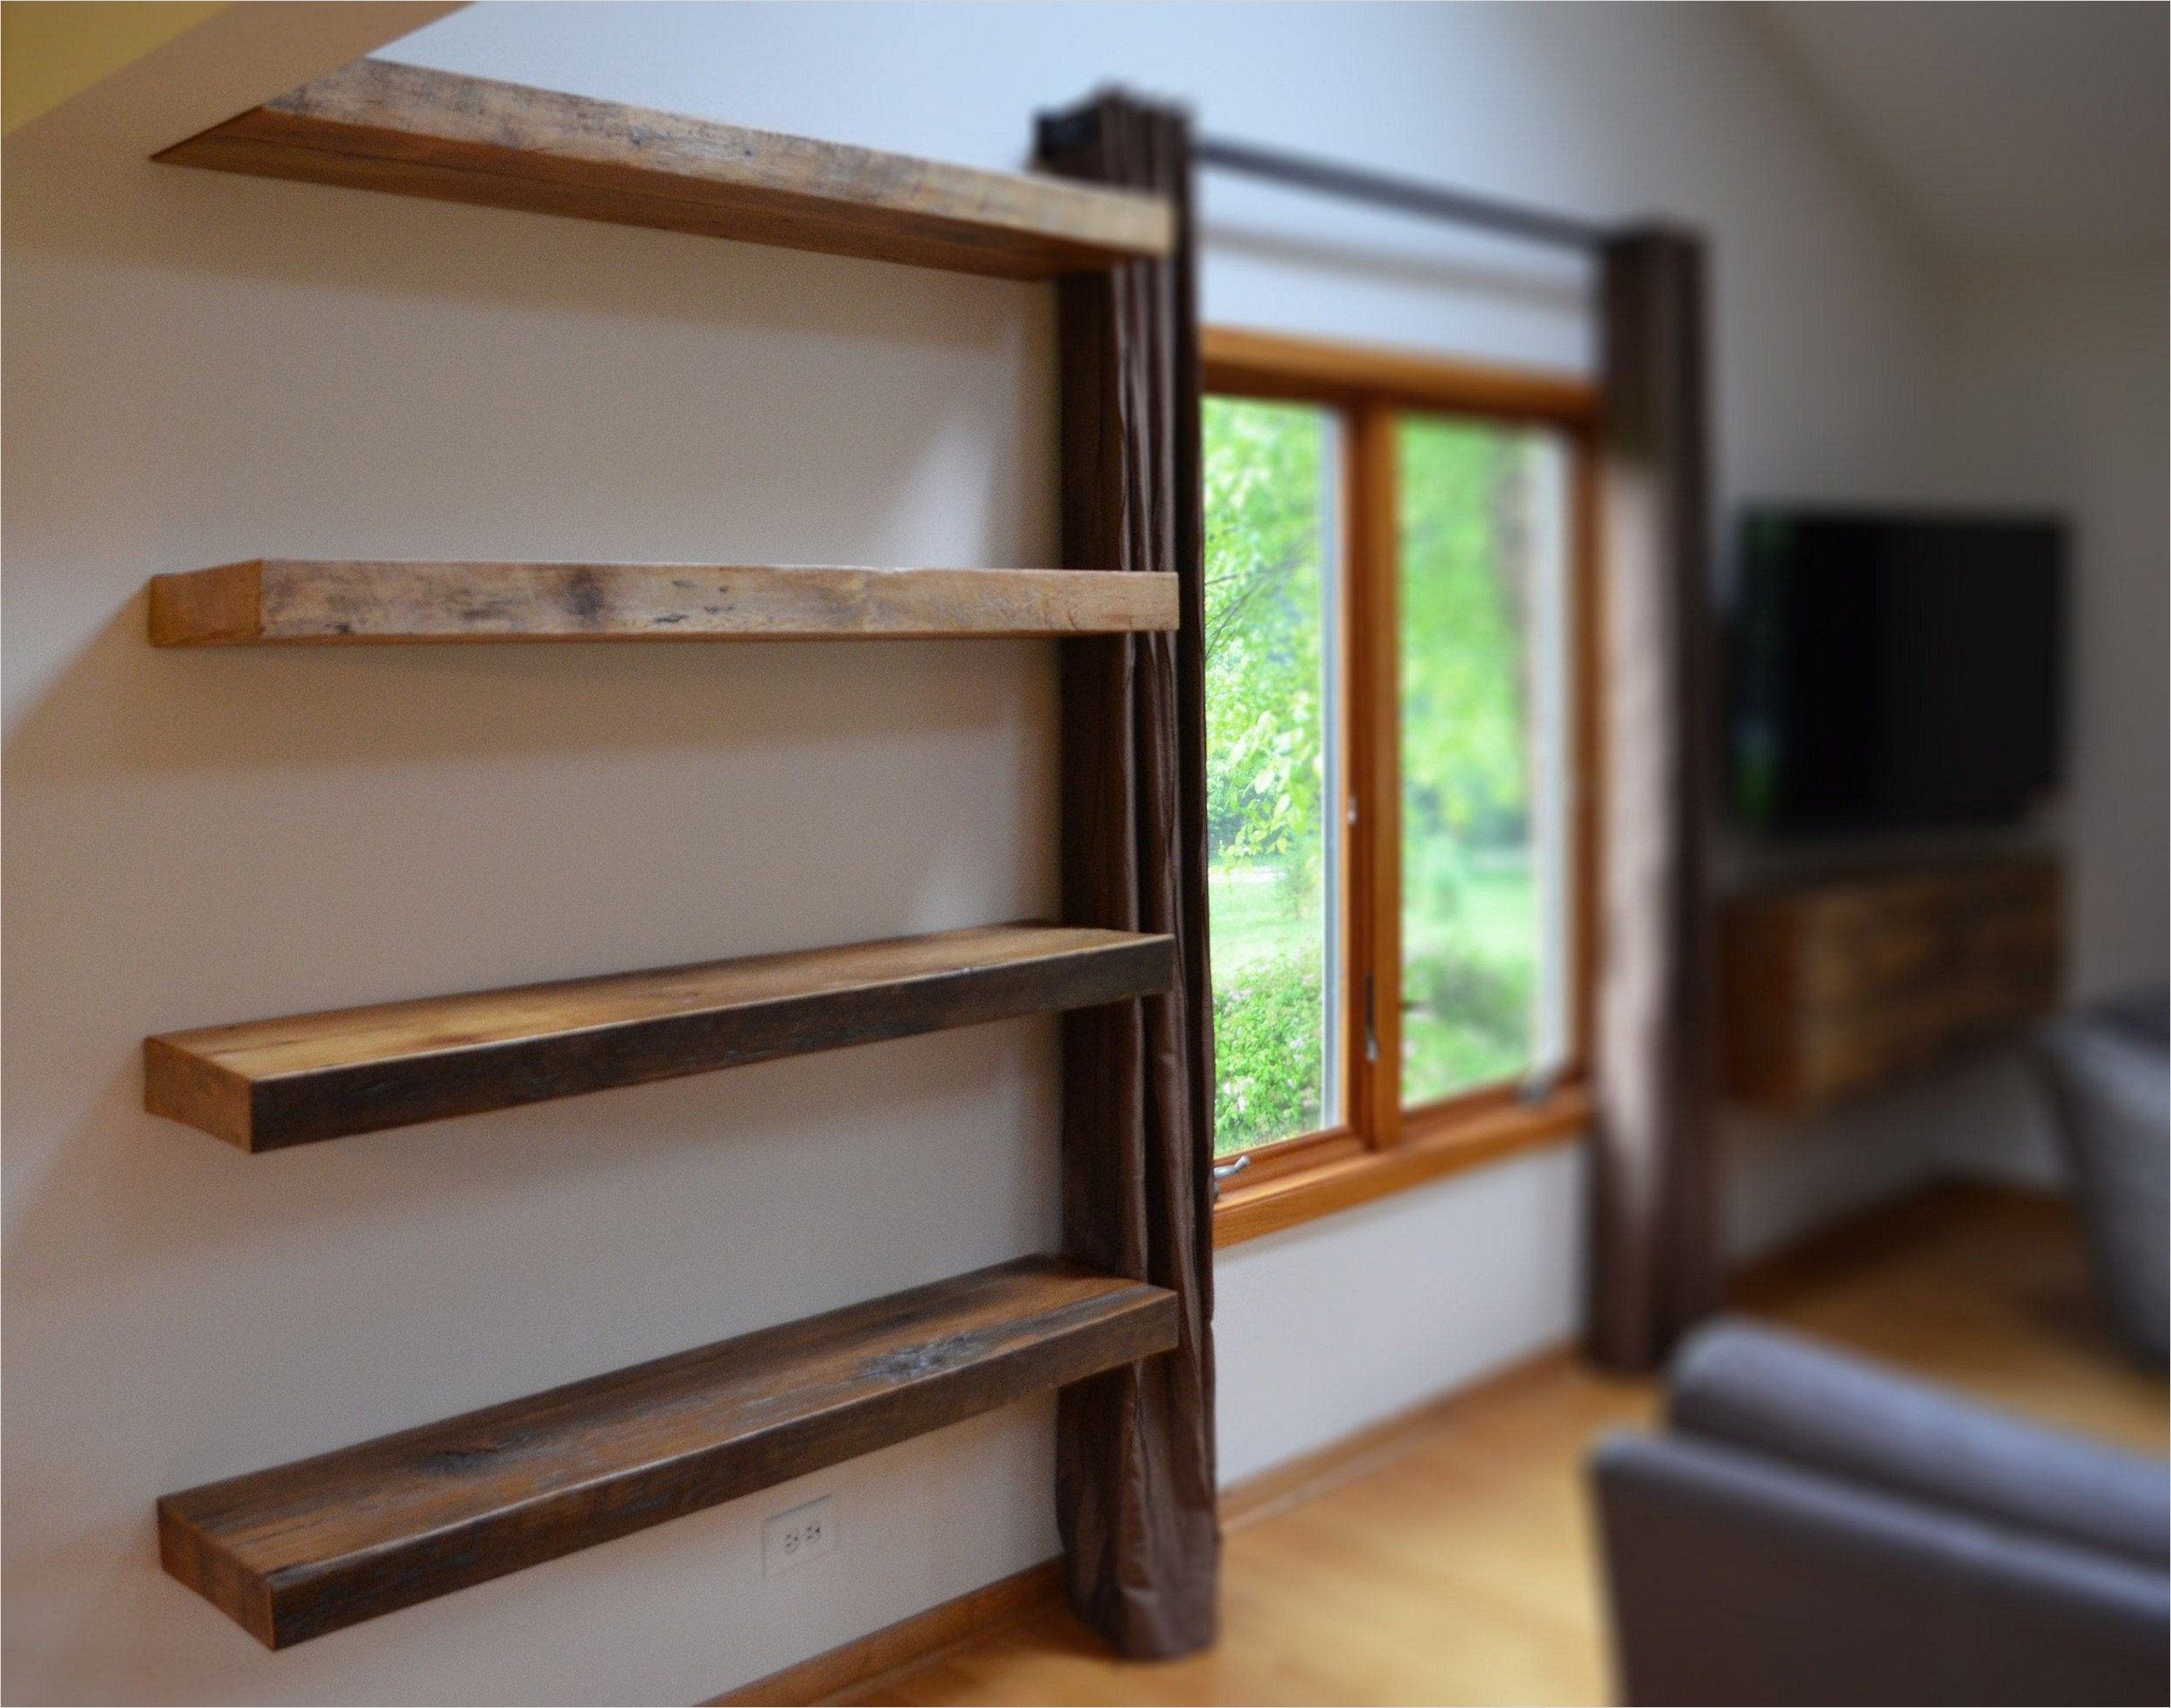 45 Creative Rustic Wall Mounted Bookshelves 84 Rustic Floating Shelves Beautiful Shelf at Narrow Room 4